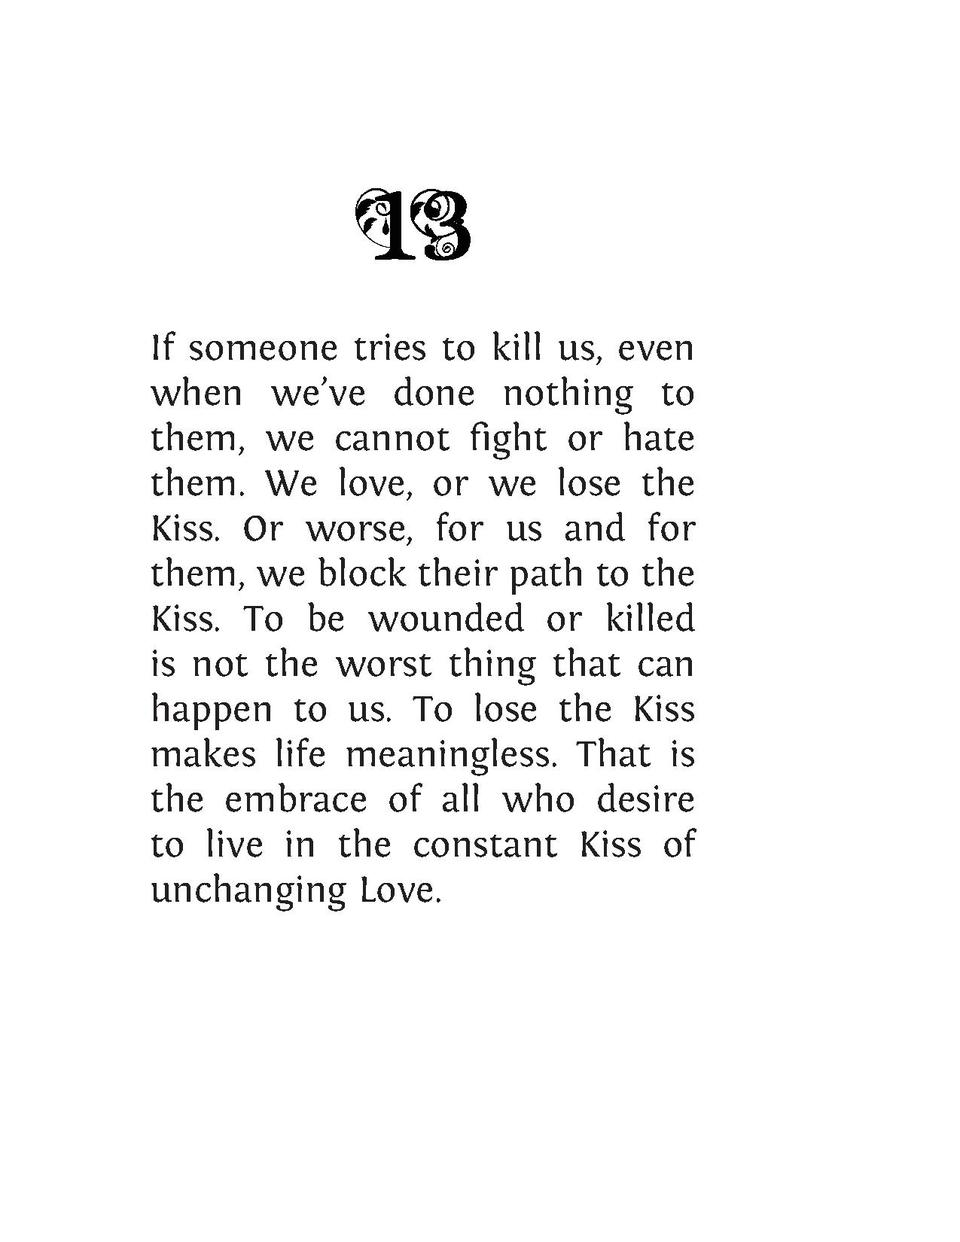 If someone tries to kill us, even when we   ve done nothing to them, we cannot fight or hate them. We love, or we lose the...